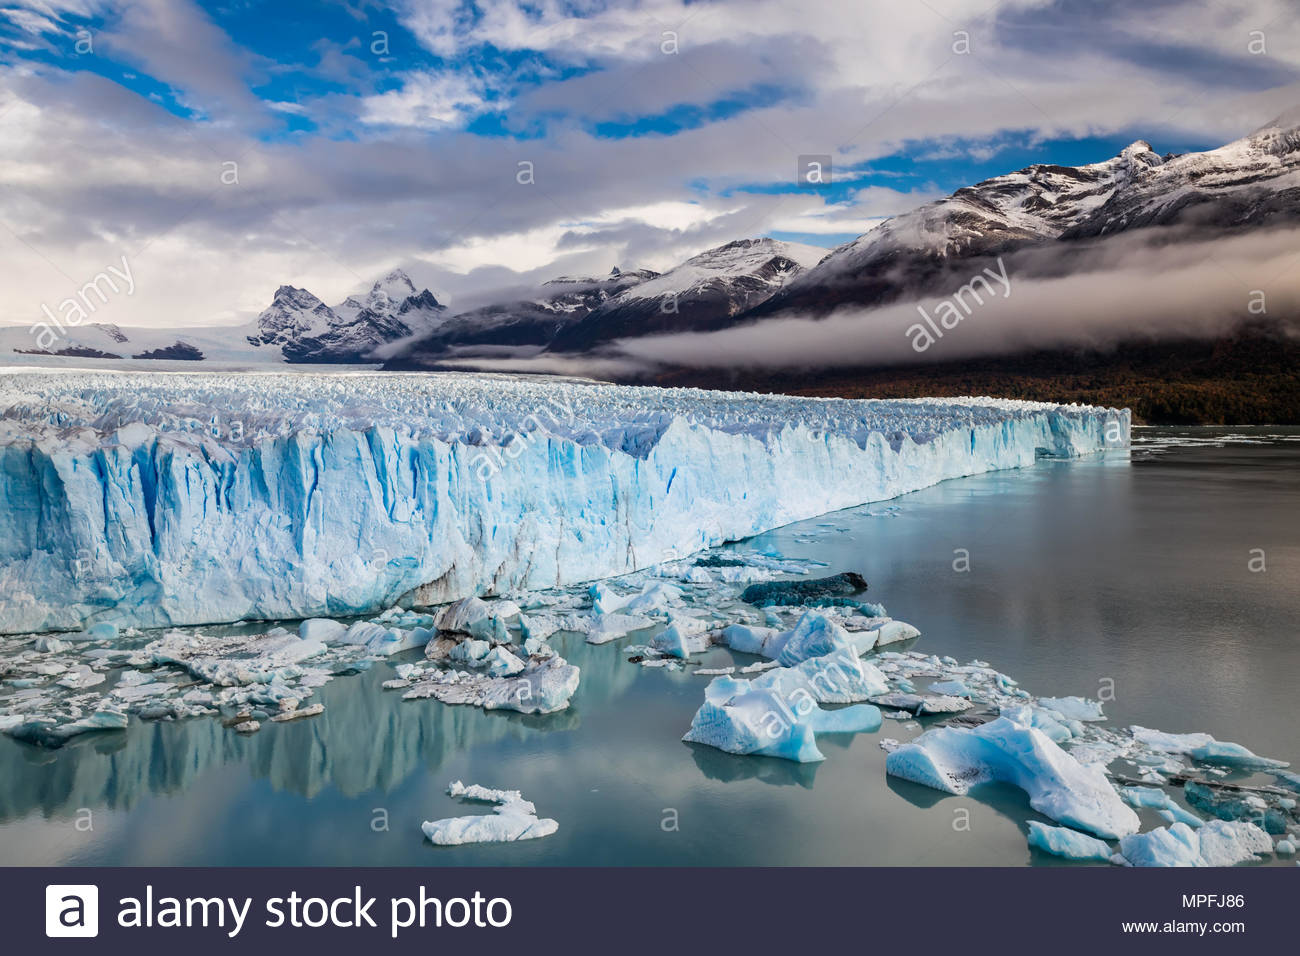 The Perito Moreno Glacier is a glacier located in the Los Glaciares National Park in Santa Cruz Province, Argentina. Its one of the most important tou - Stock Image